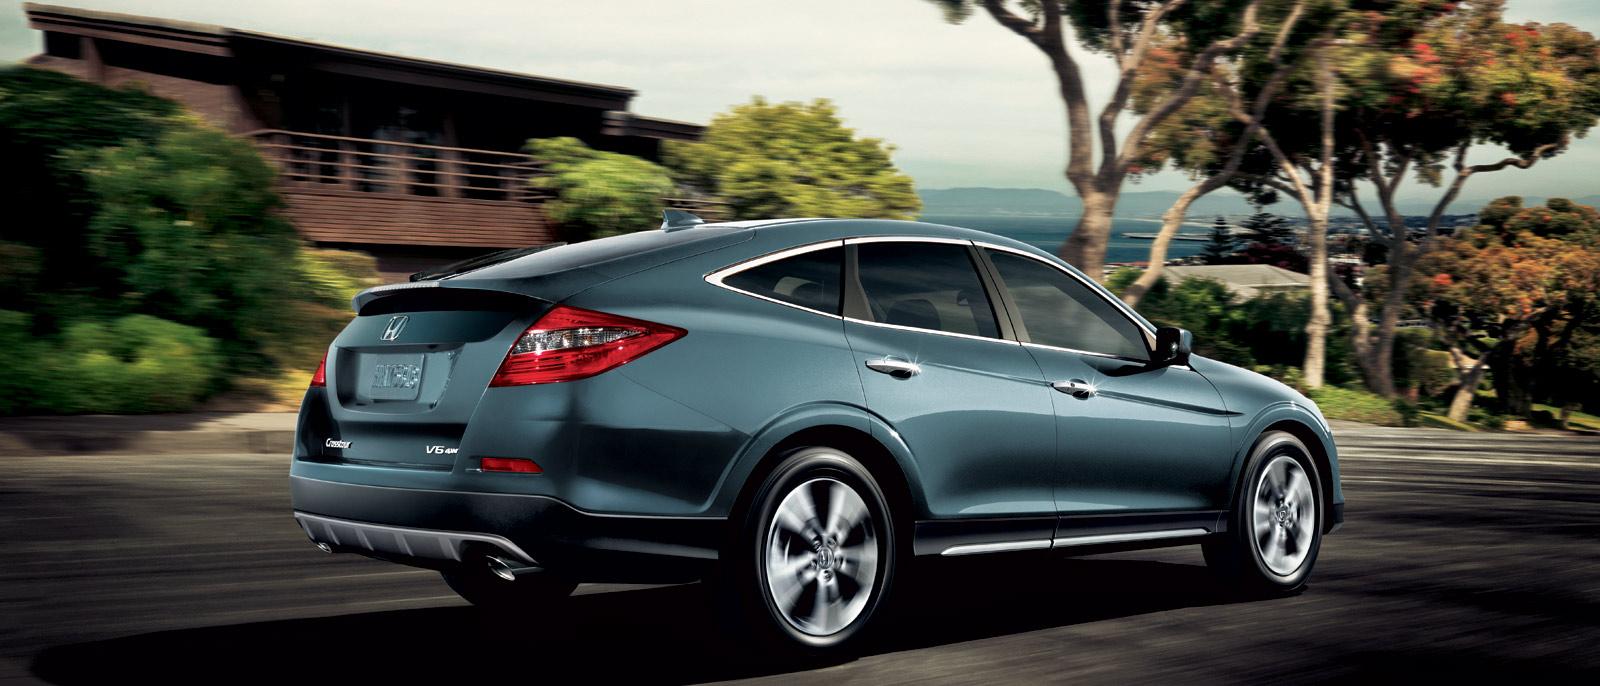 Honda Crosstour Used Engines